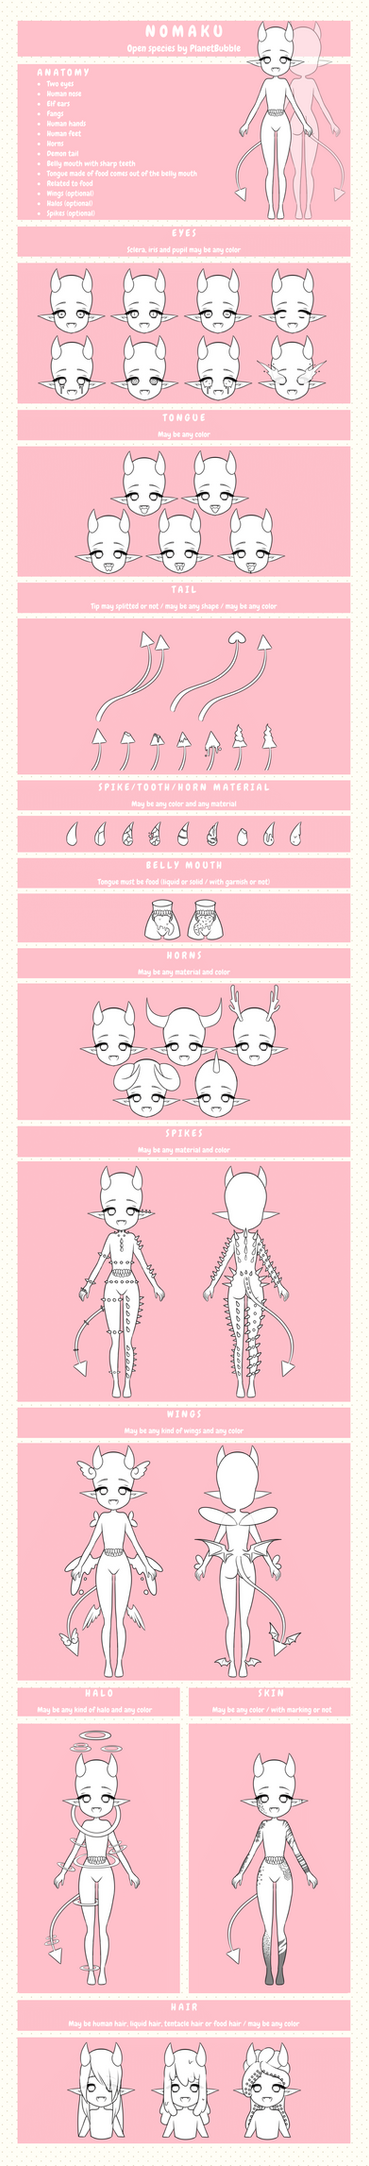 Nomaku Open Species by PlanetBubble